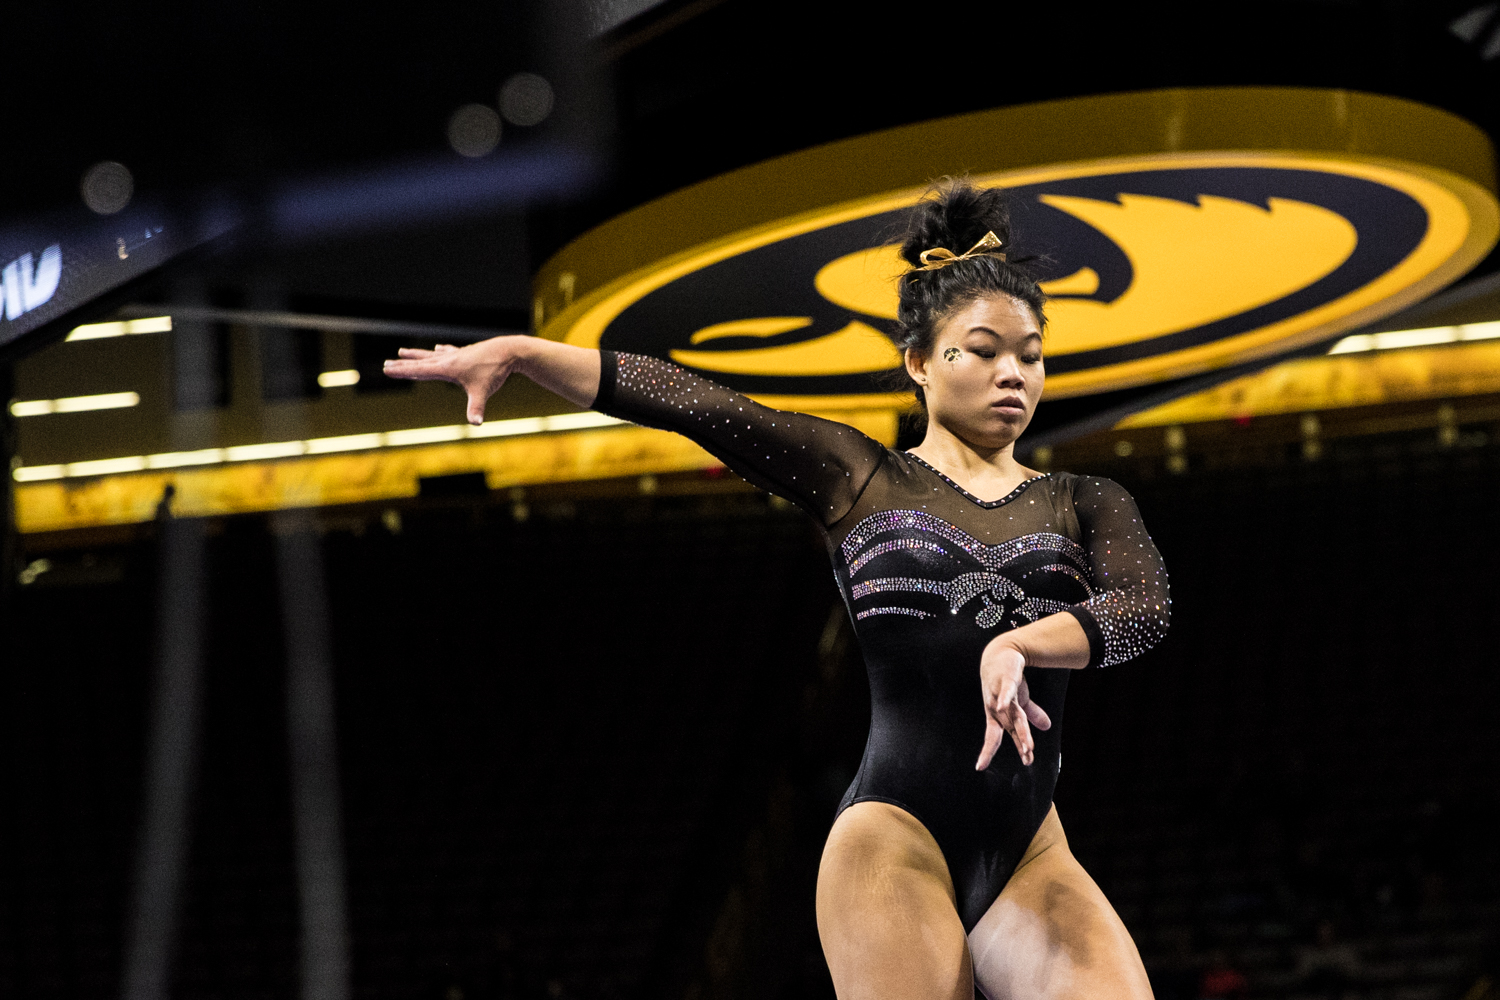 Iowa%27s+Misty-Jade+Carlson+competes+on+beam+during+a+women%27s+gymnastics+meet+between+Iowa+and+Iowa+State+at+Carver-Hawkeye+Arena+on+Friday%2C+March+1%2C+2019.+Carlson+scored+9.850+in+the+event.+The+Hawkeyes%2C+celebrating+senior+night%2C+fell+to+the+Cyclones%2C+196.275-196.250.